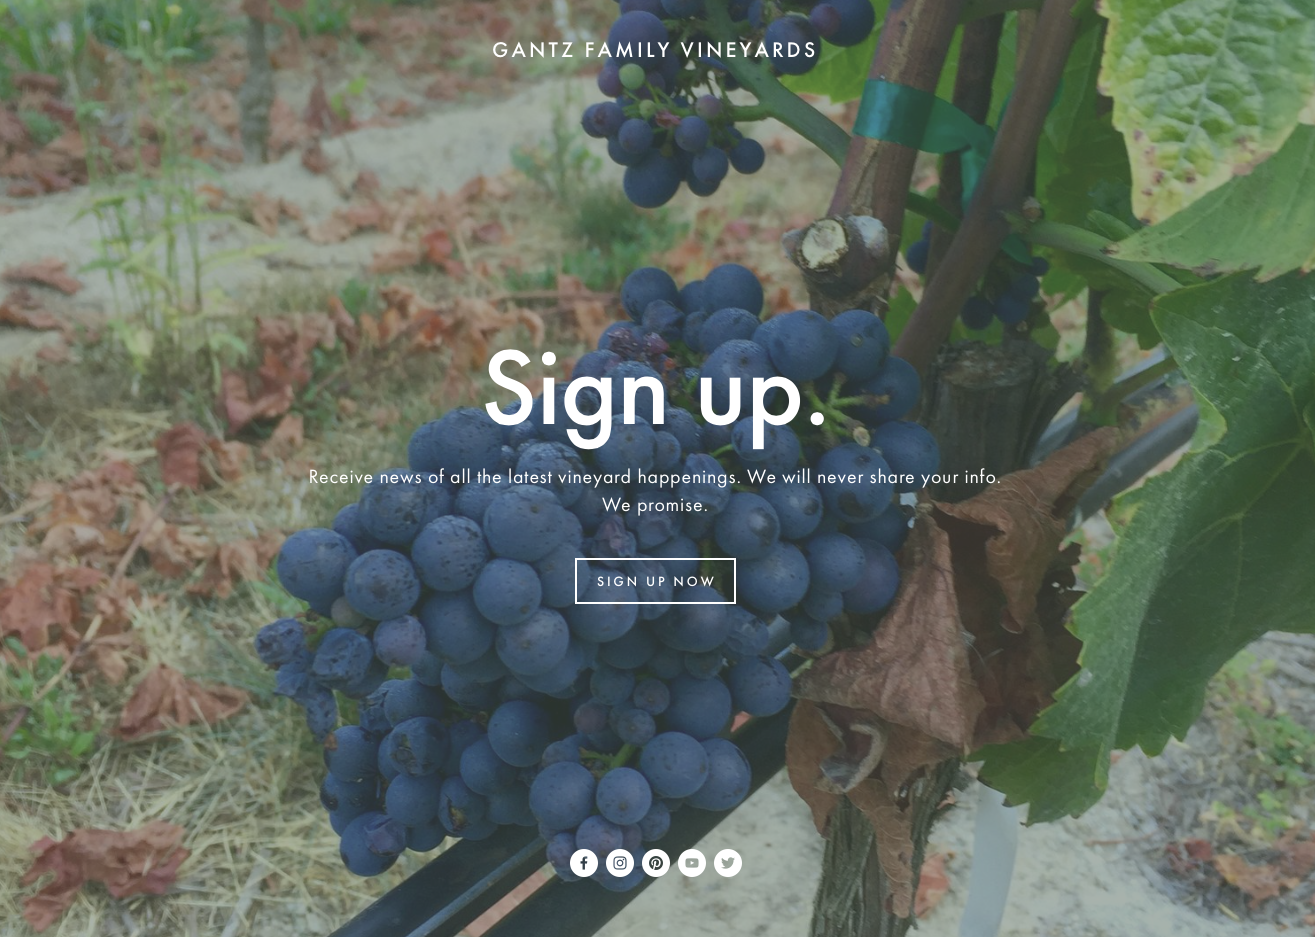 Newsletter_GantzFamilyVineyards.png